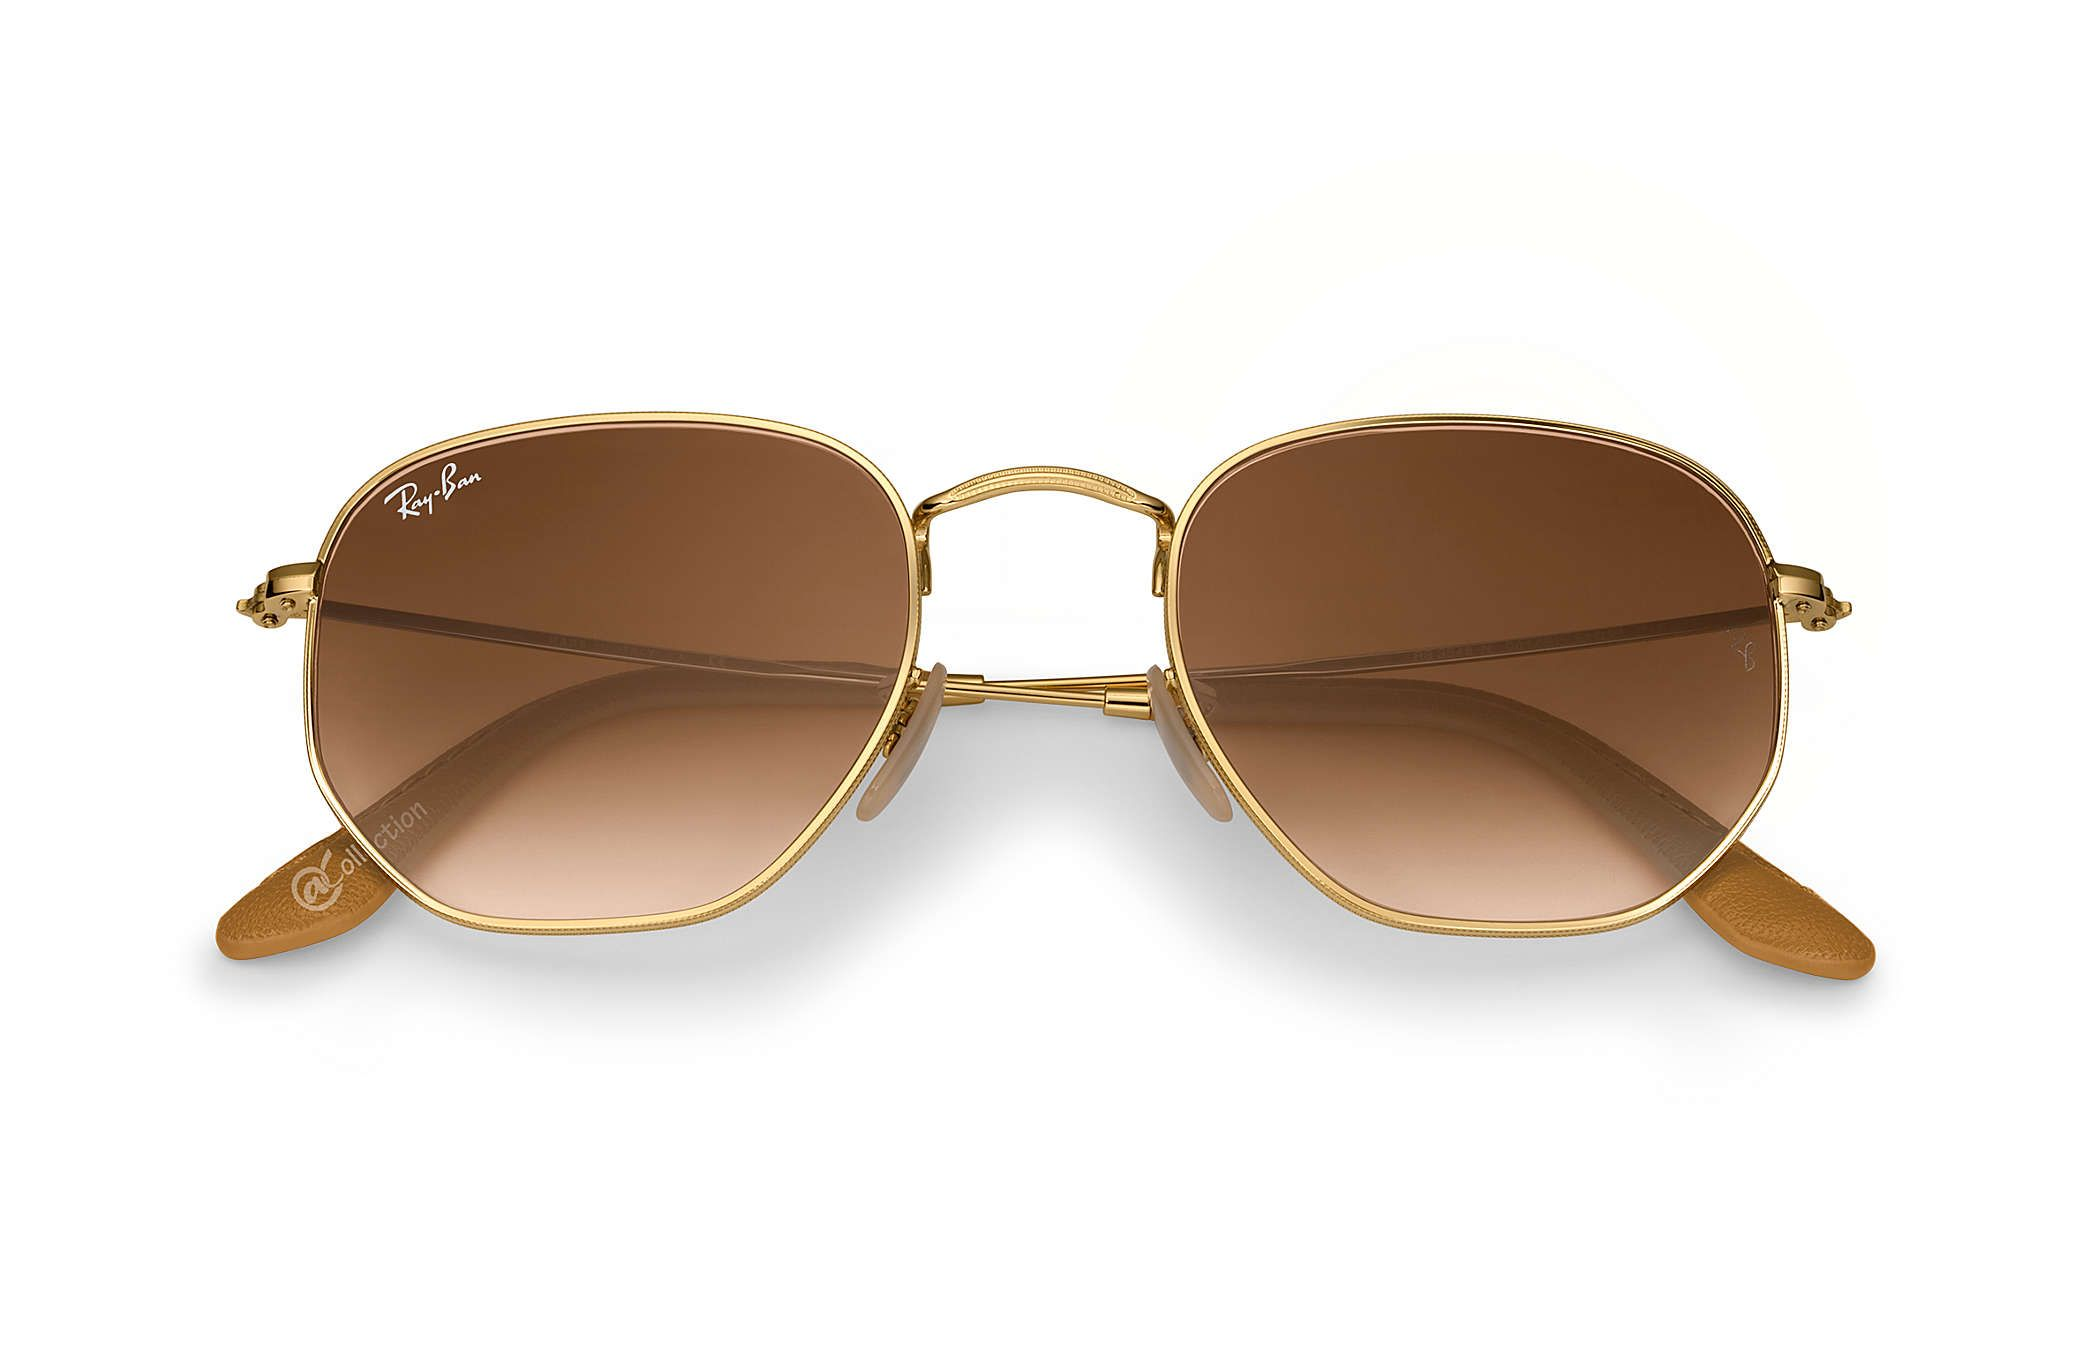 ad2357b91 Luxottica S.p.A in 2019 | Wishlist | Hexagonal ray ban, Ray bans ...